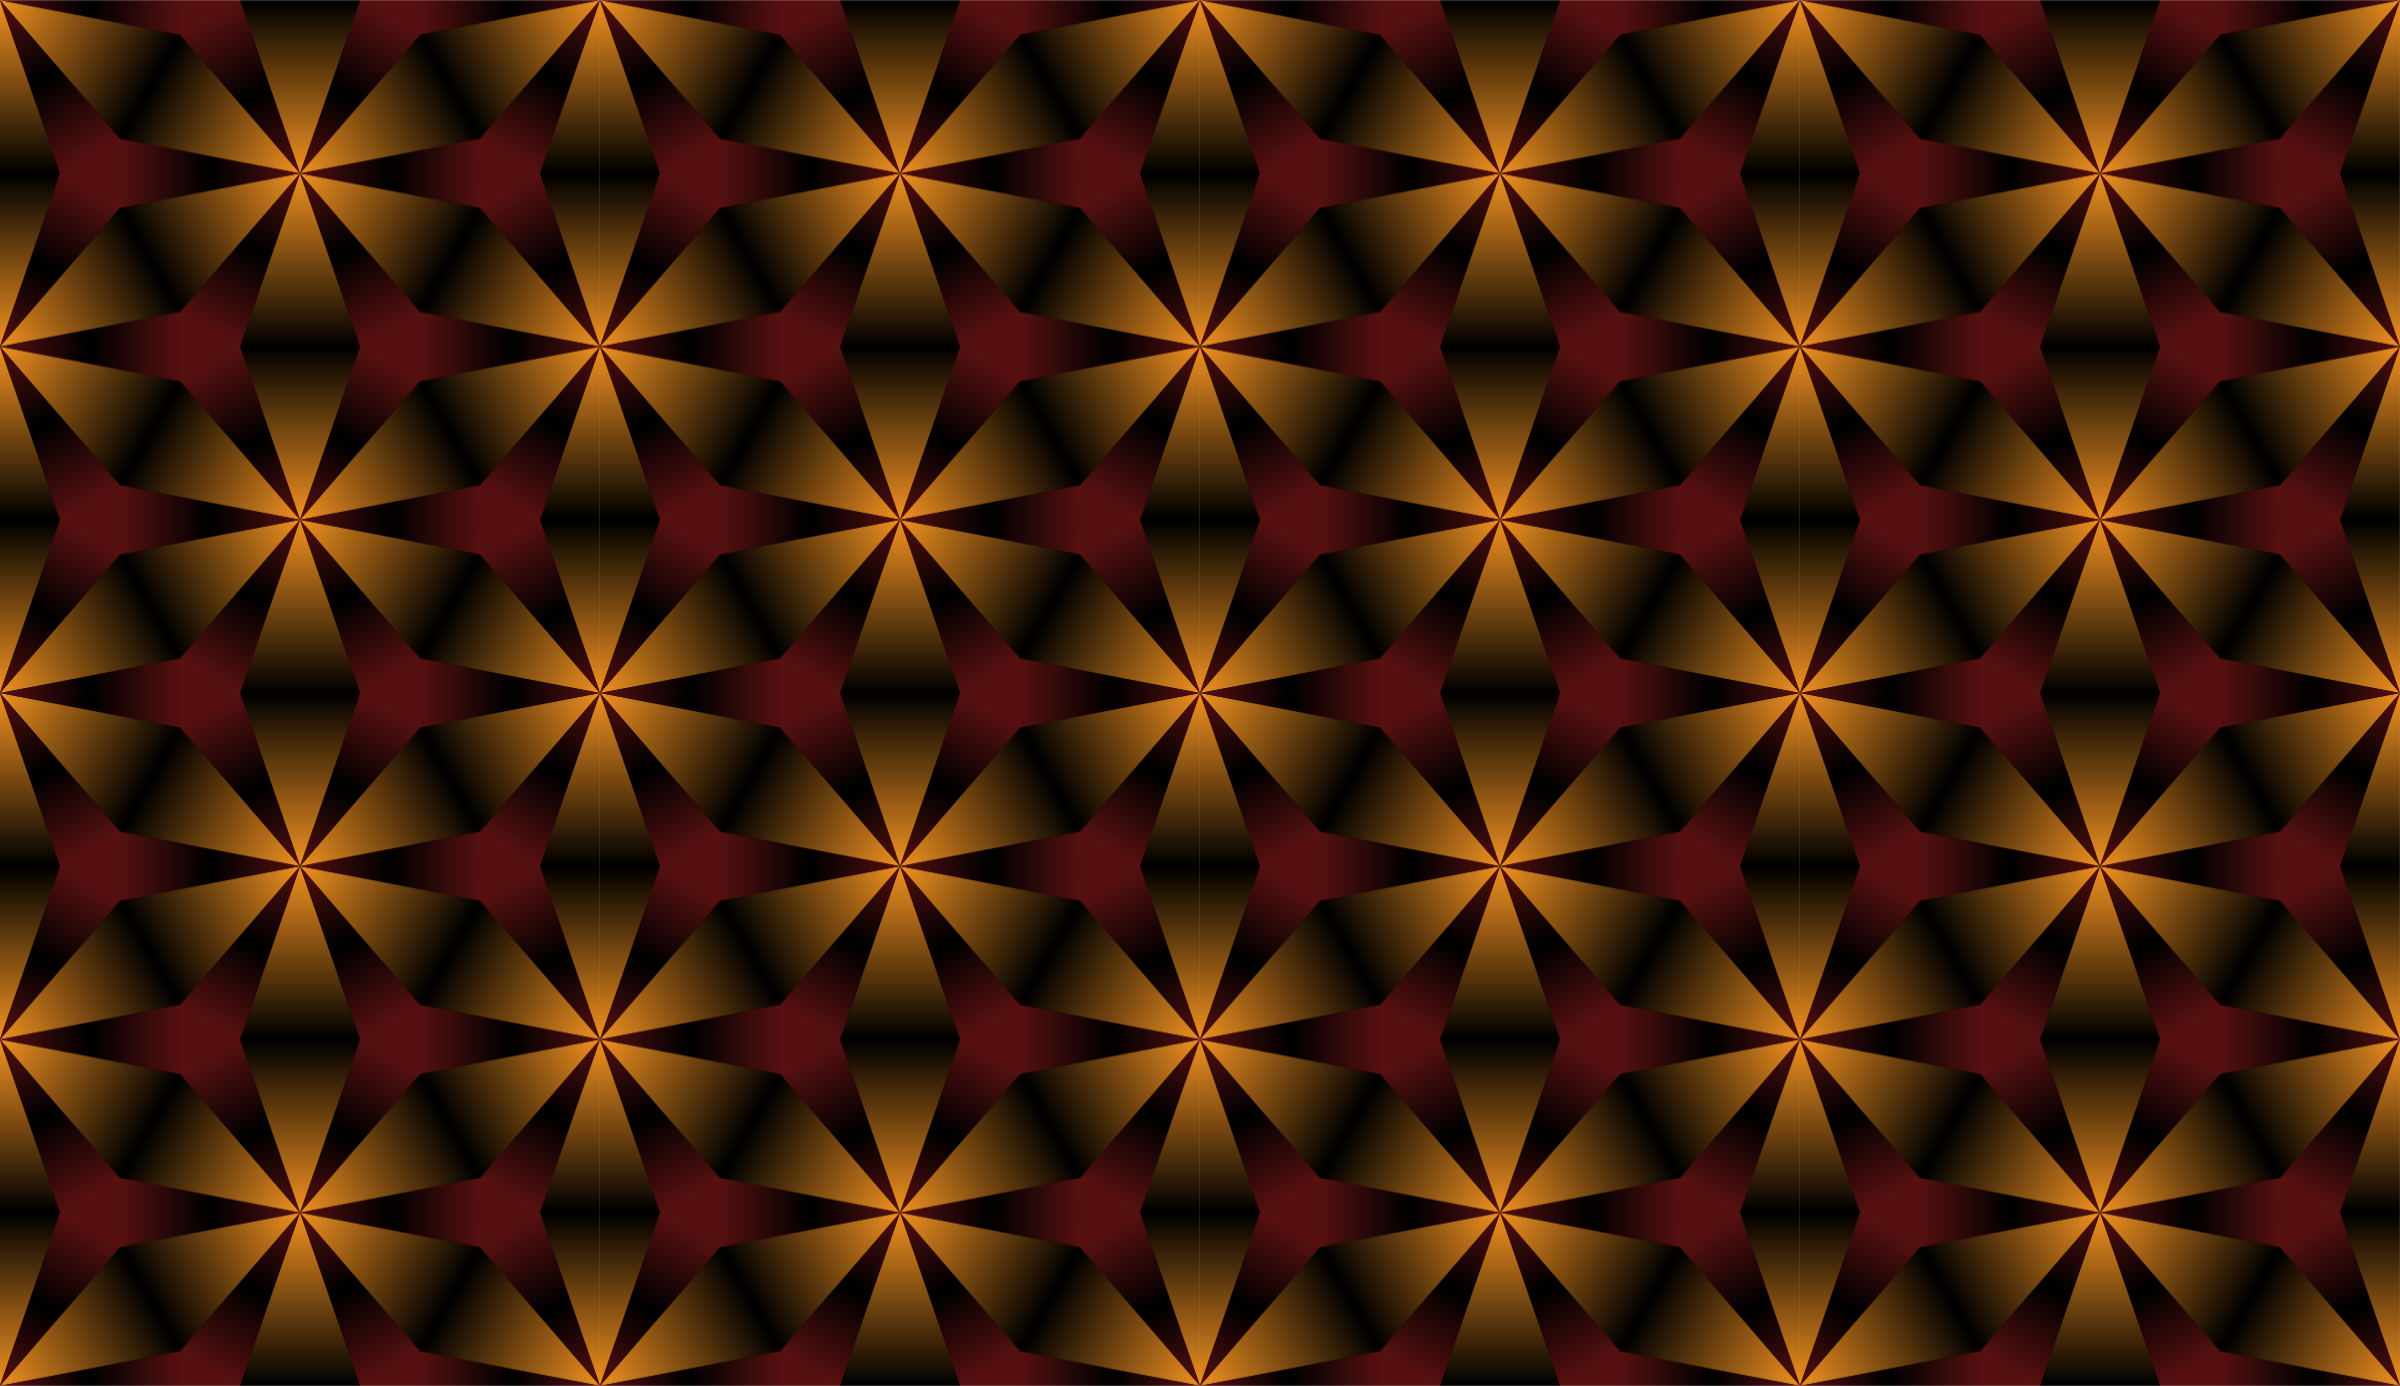 Tessellation 16 (colour 5) by Firkin